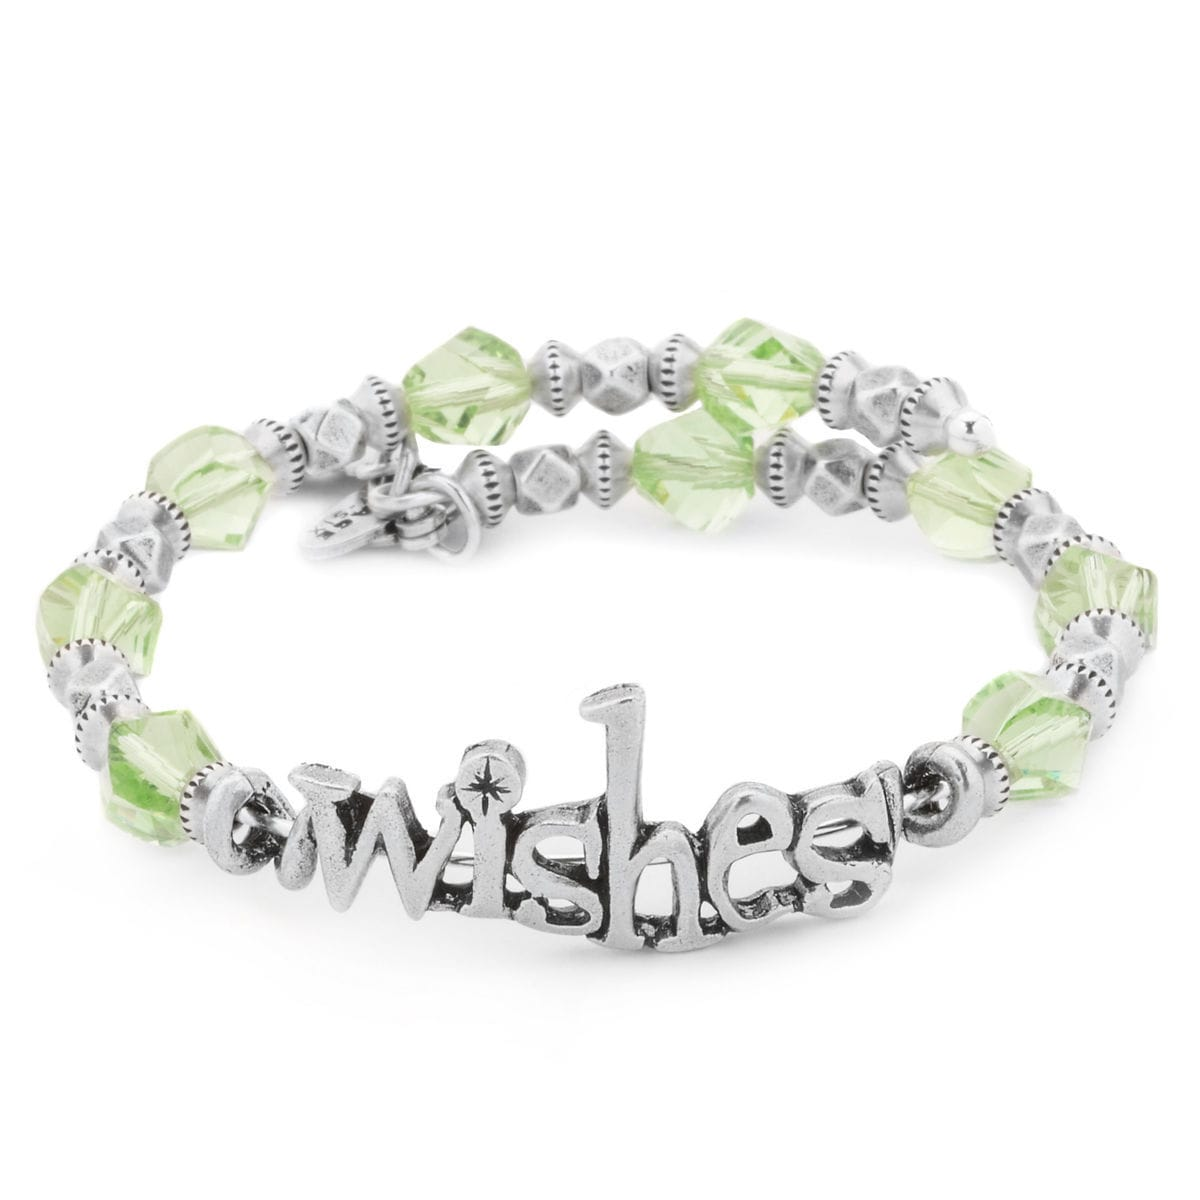 Product Image Of Wishes Silver Wrap Bracelet By Alex And Ani 1